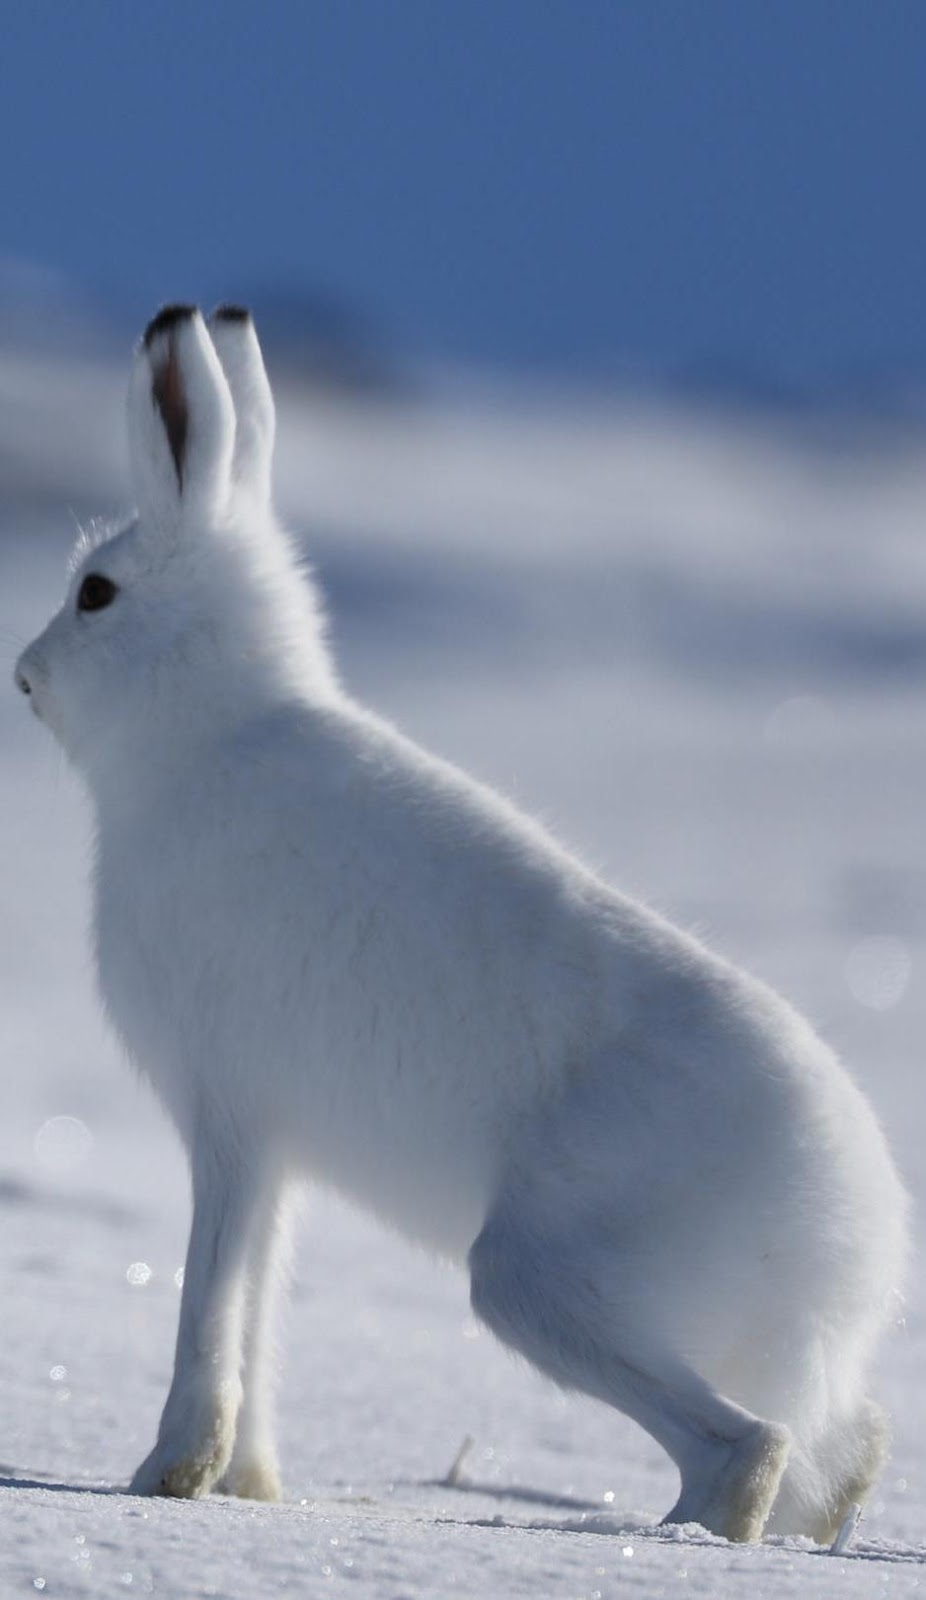 An arctic hare walking on snow.